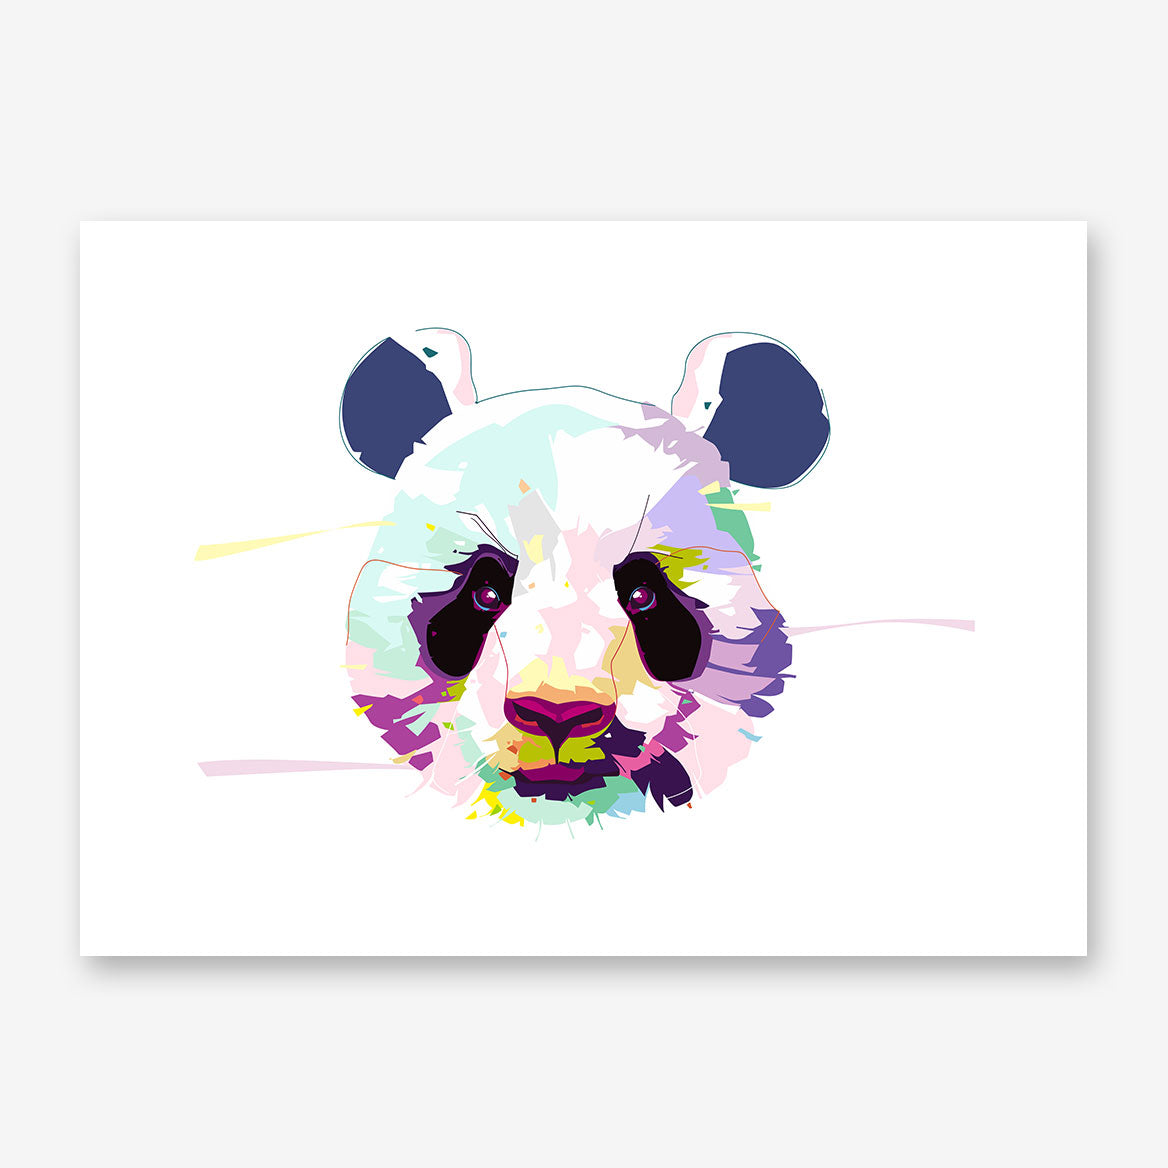 Poster print with colourful panda portrait, on a white background.